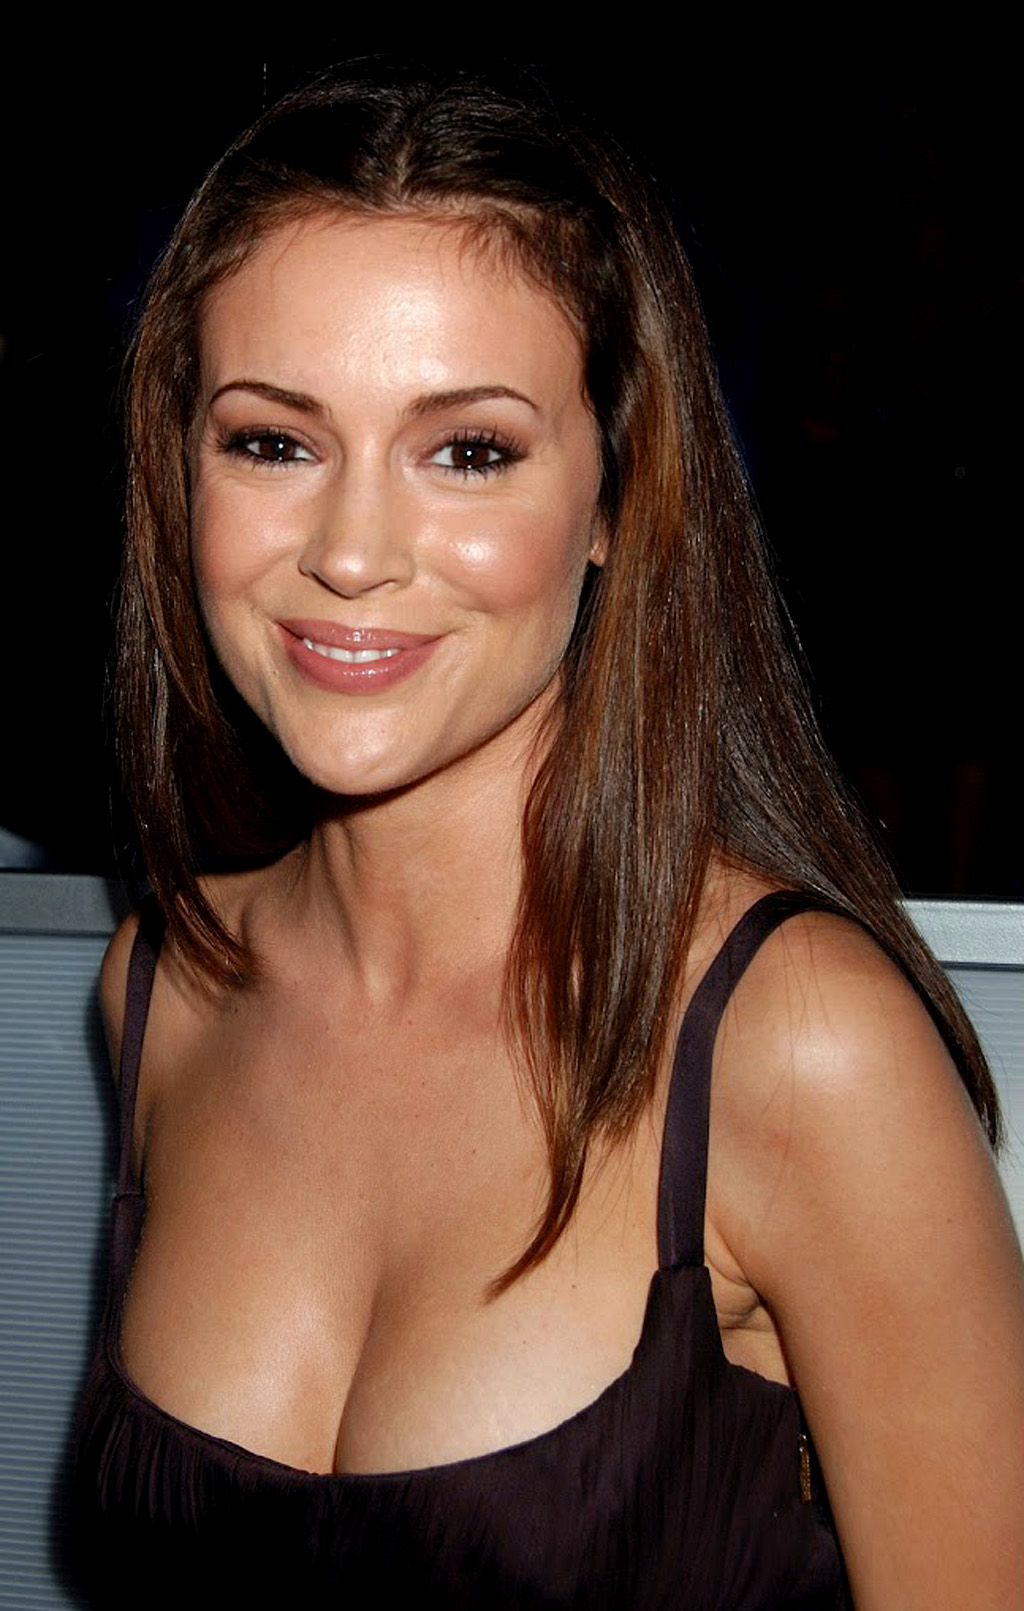 Alyssa milano naked pussy will your